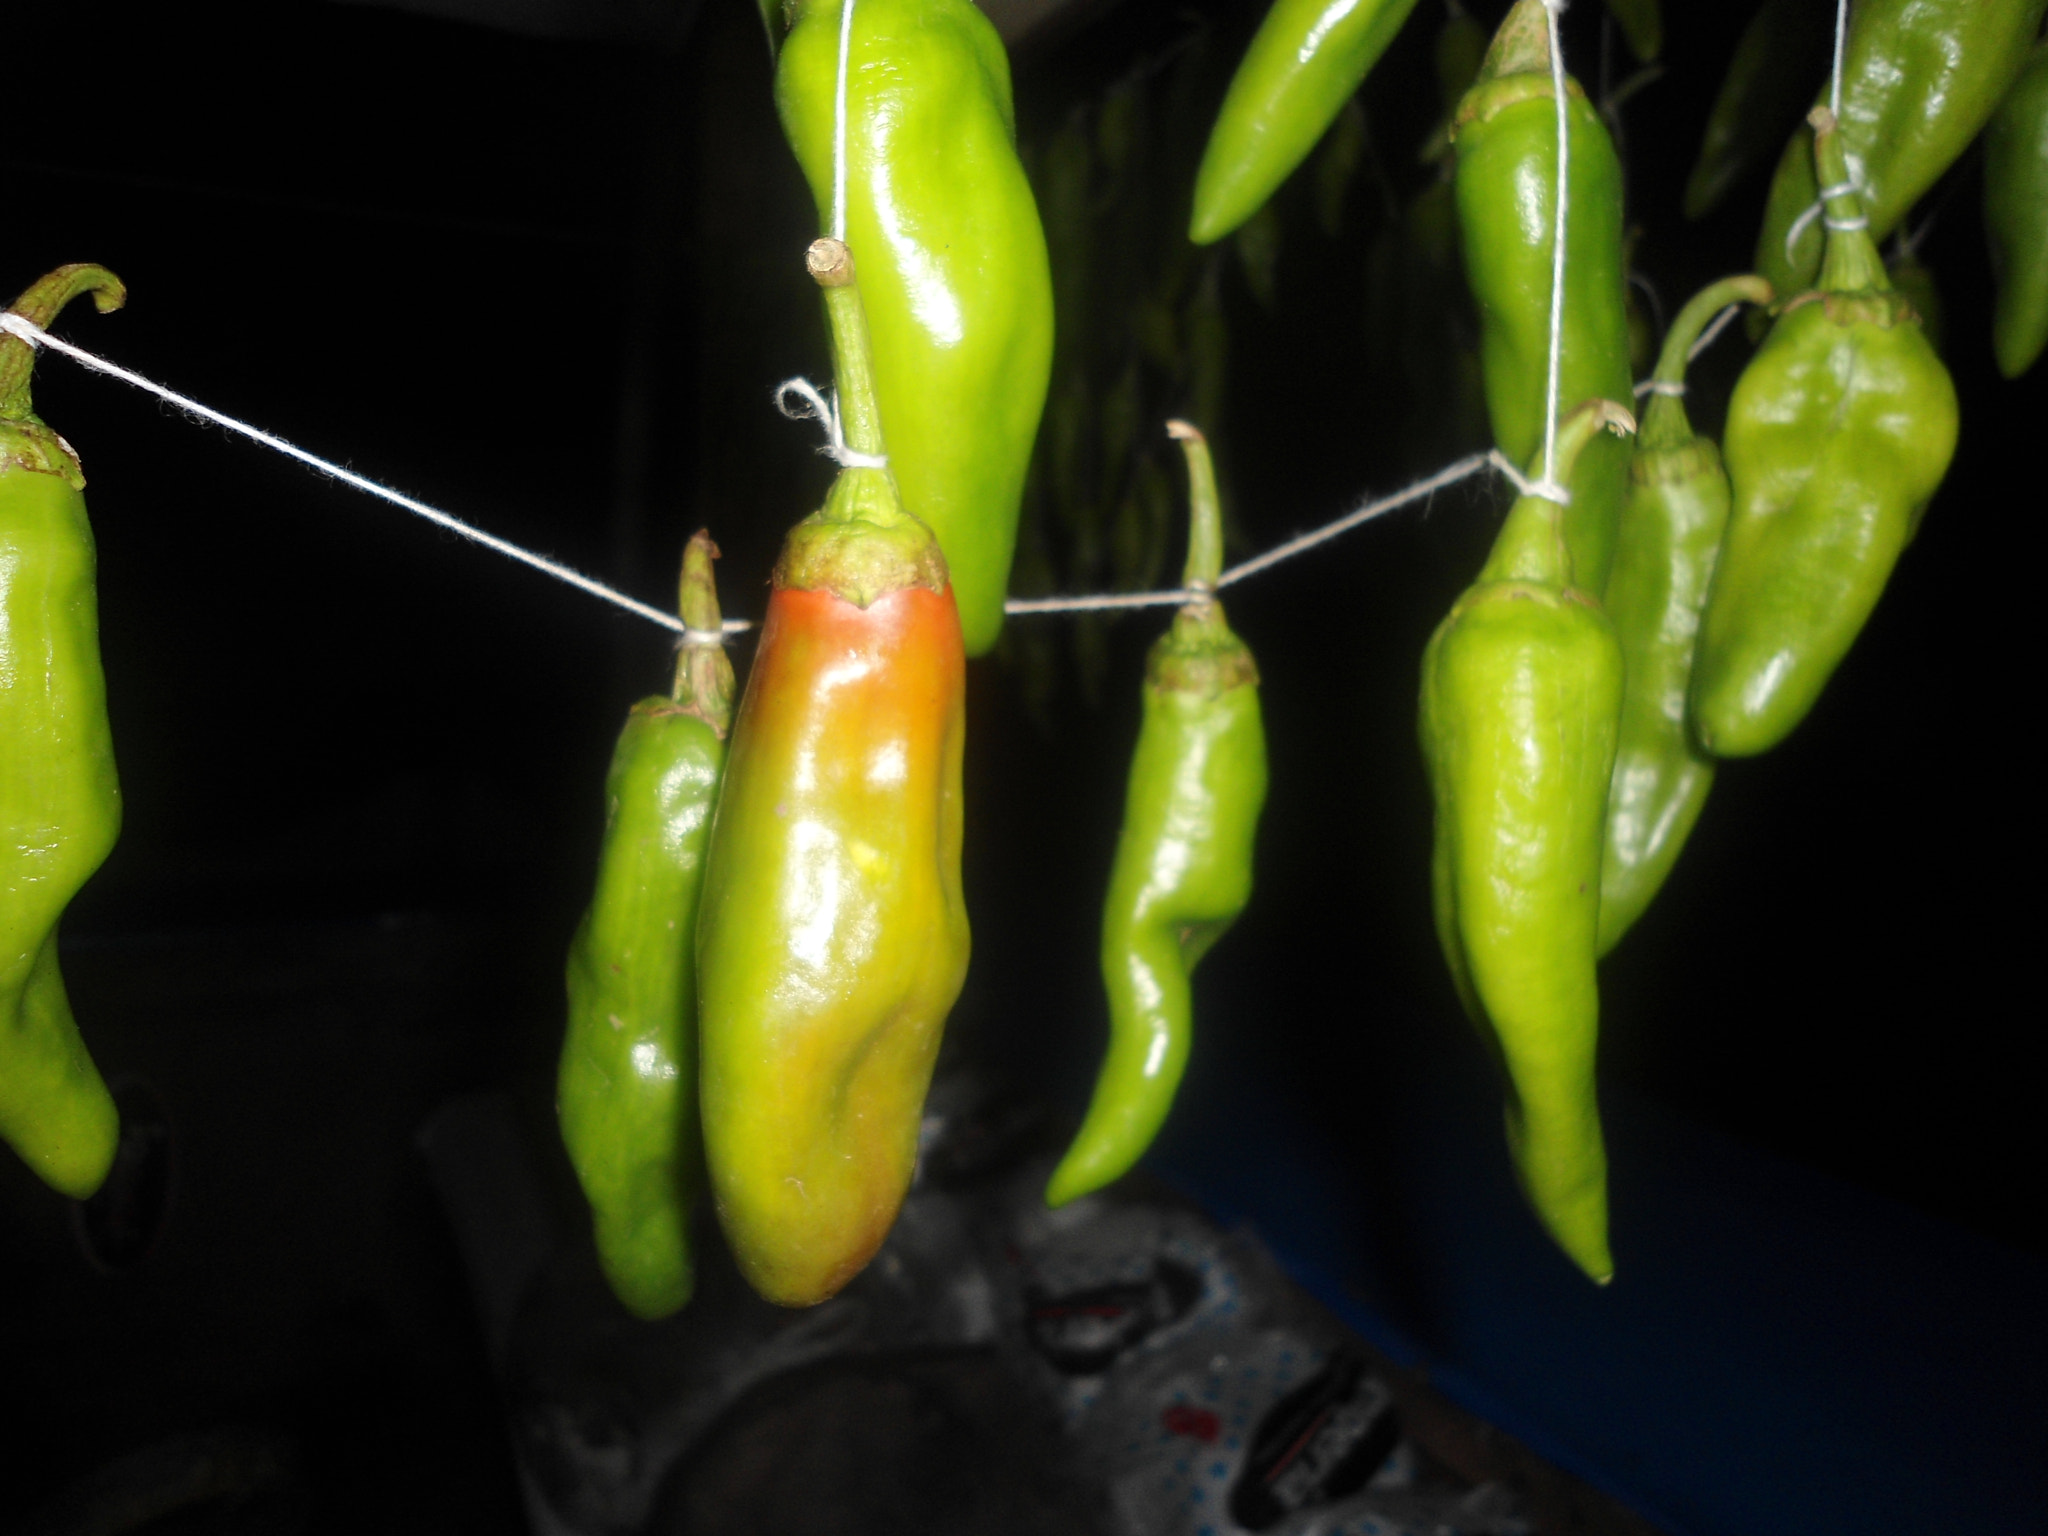 Photograph Indian Chillies in Dark by Shahnawaz Memon on 500px